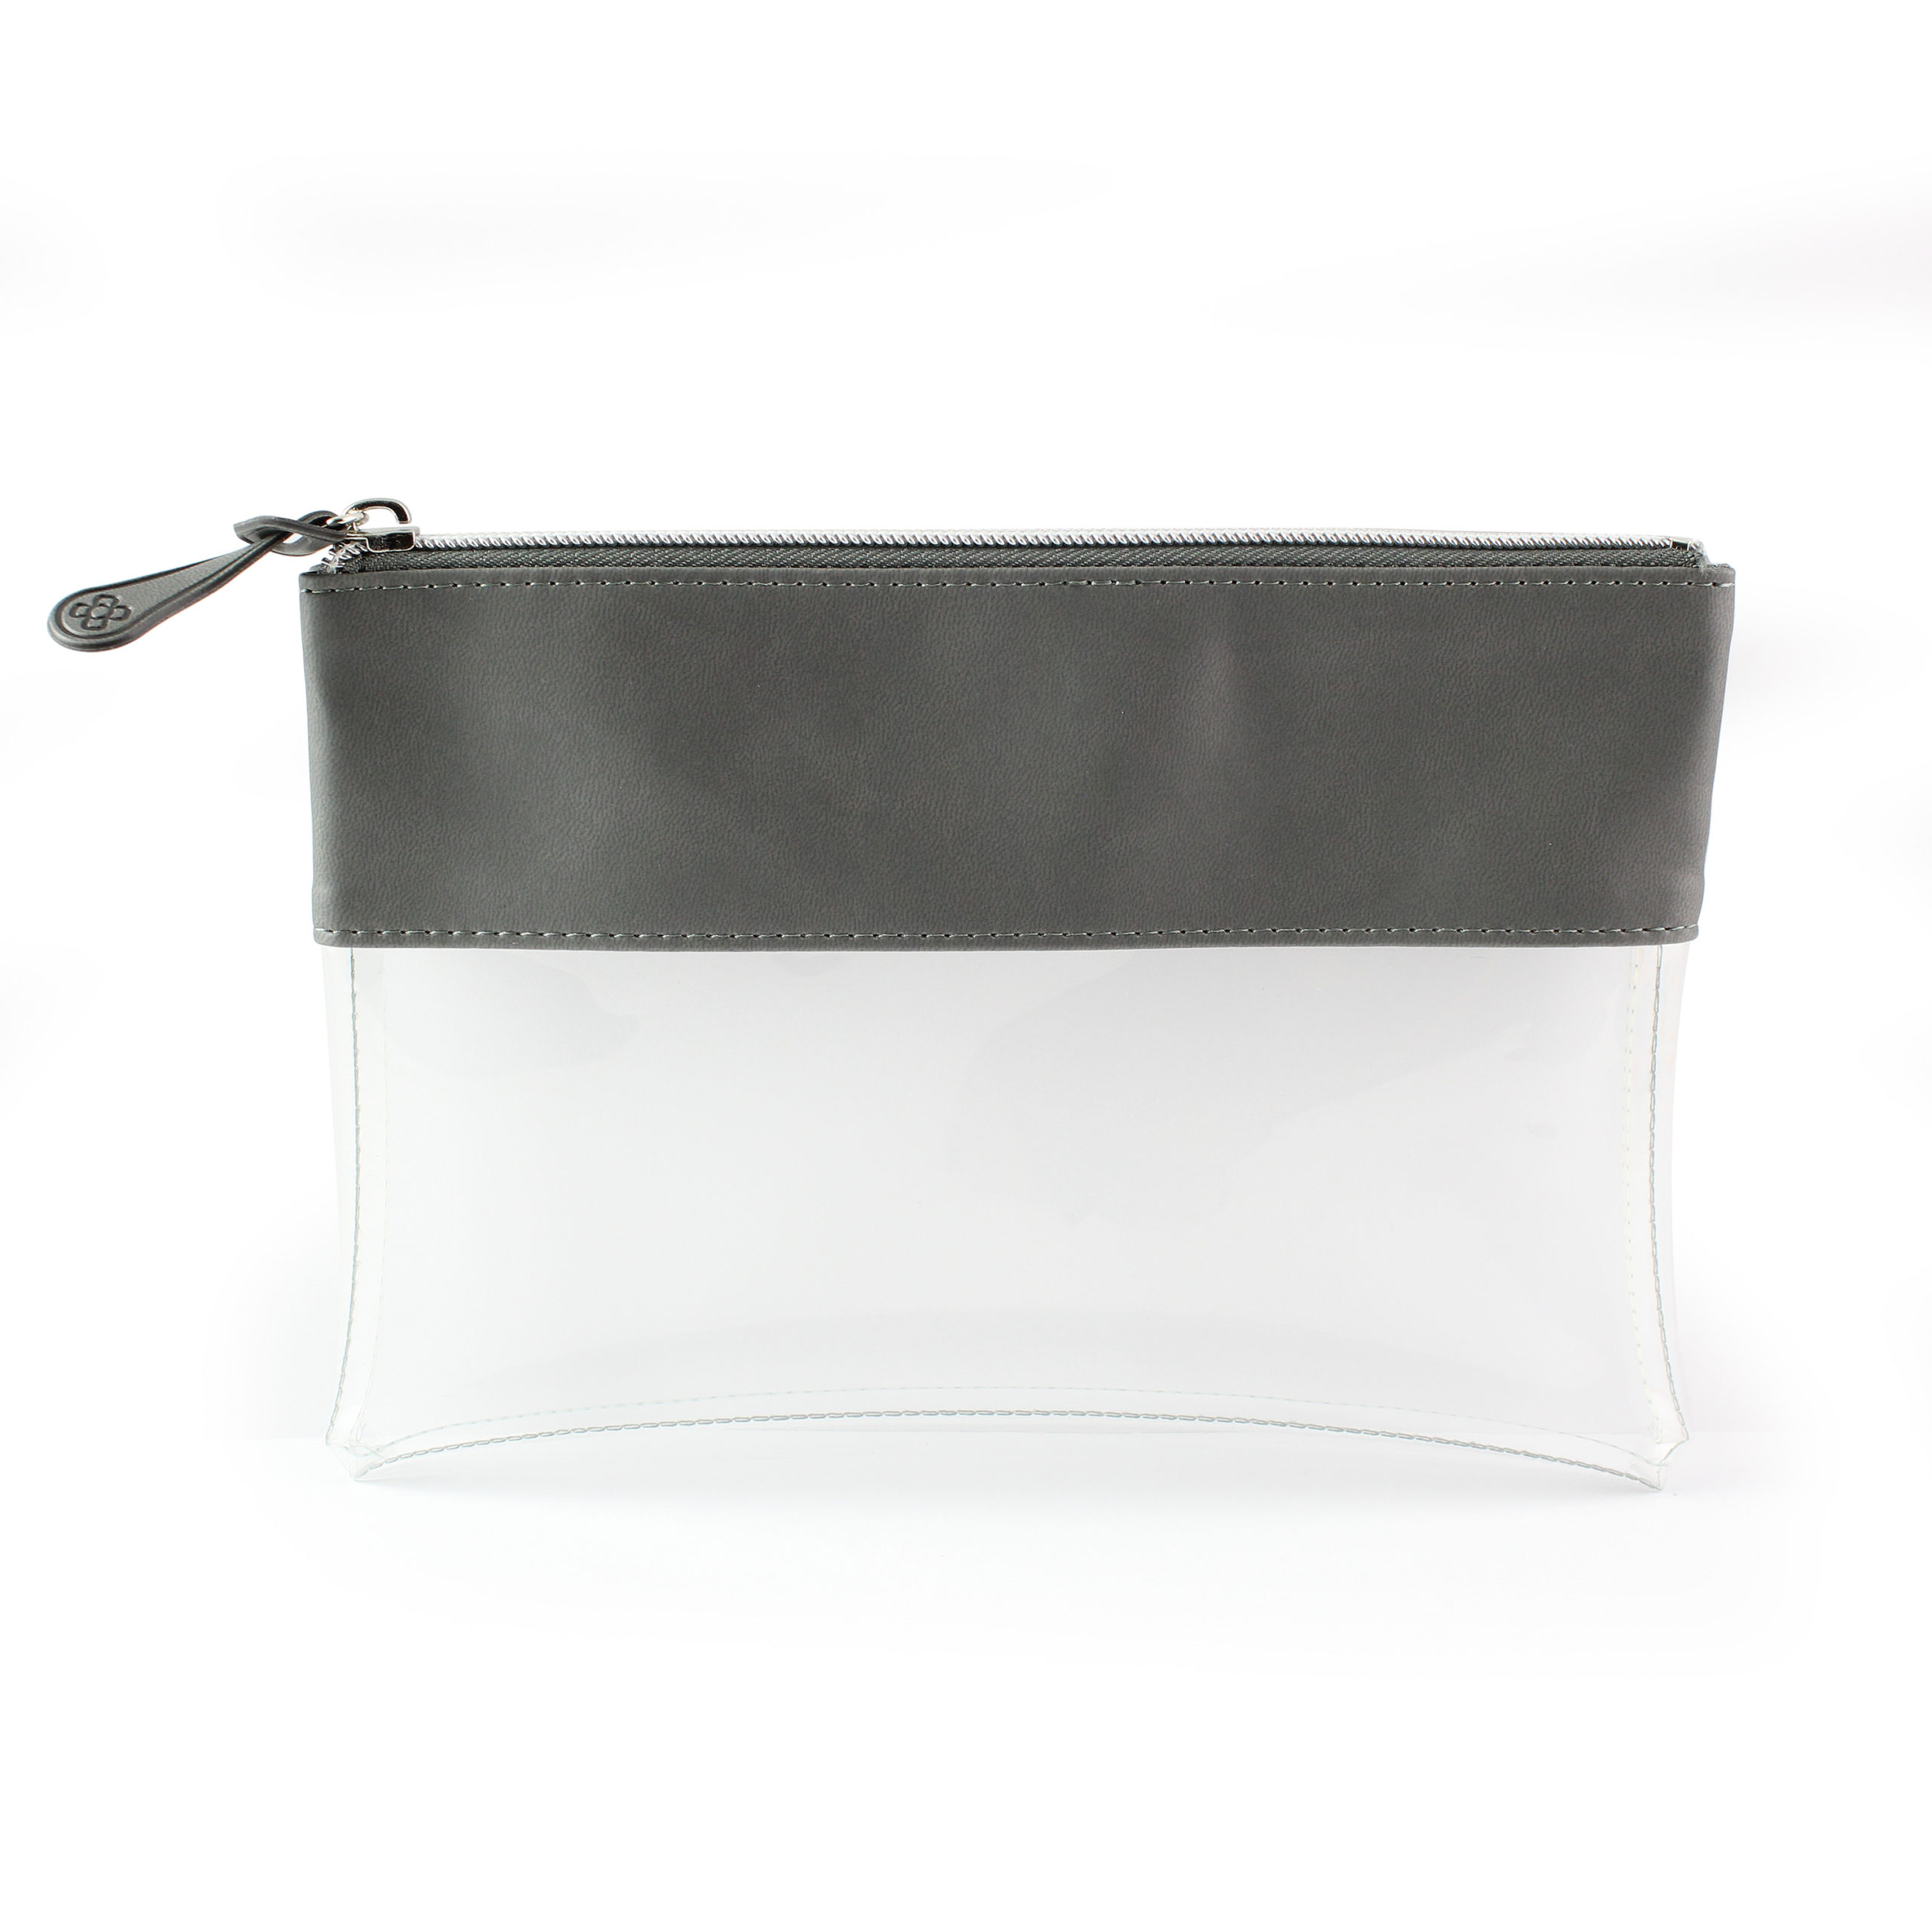 Dark Grey Clear Pouch ideal as a travel pouch or pencil case.